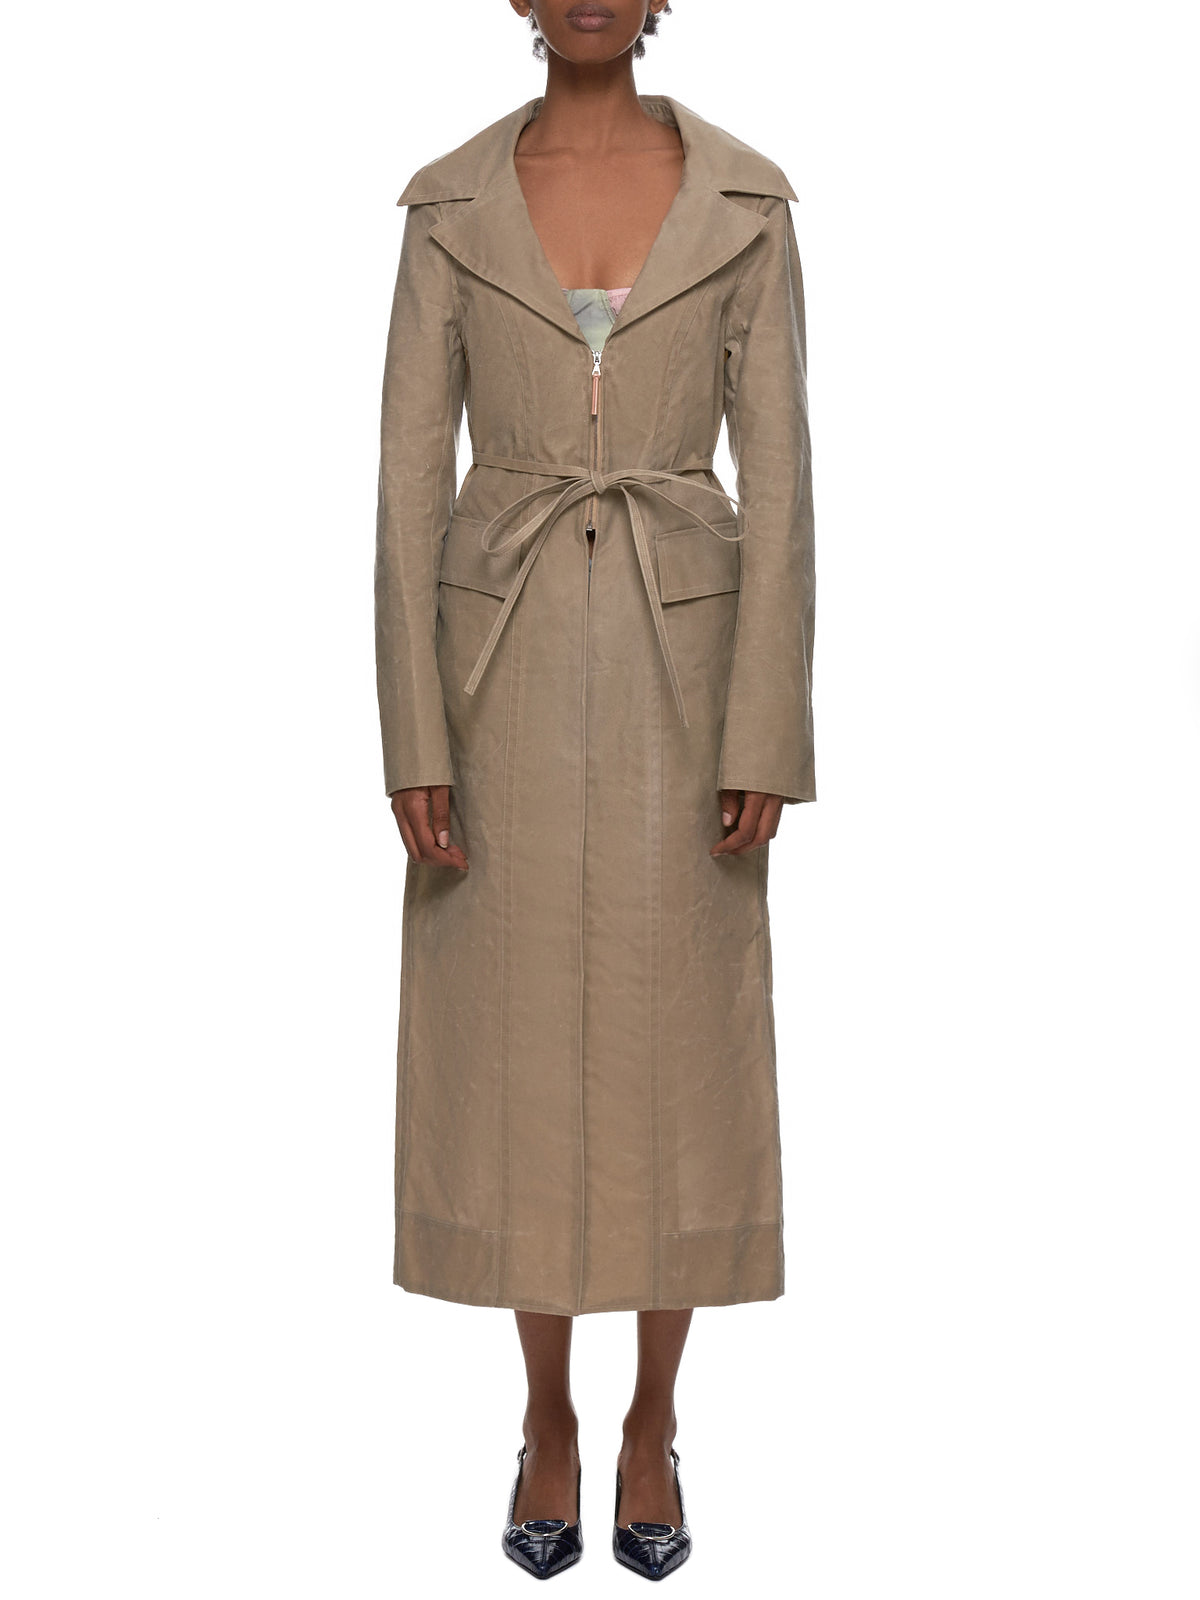 Charlotte Knowles Coat - Hlorenzo Front